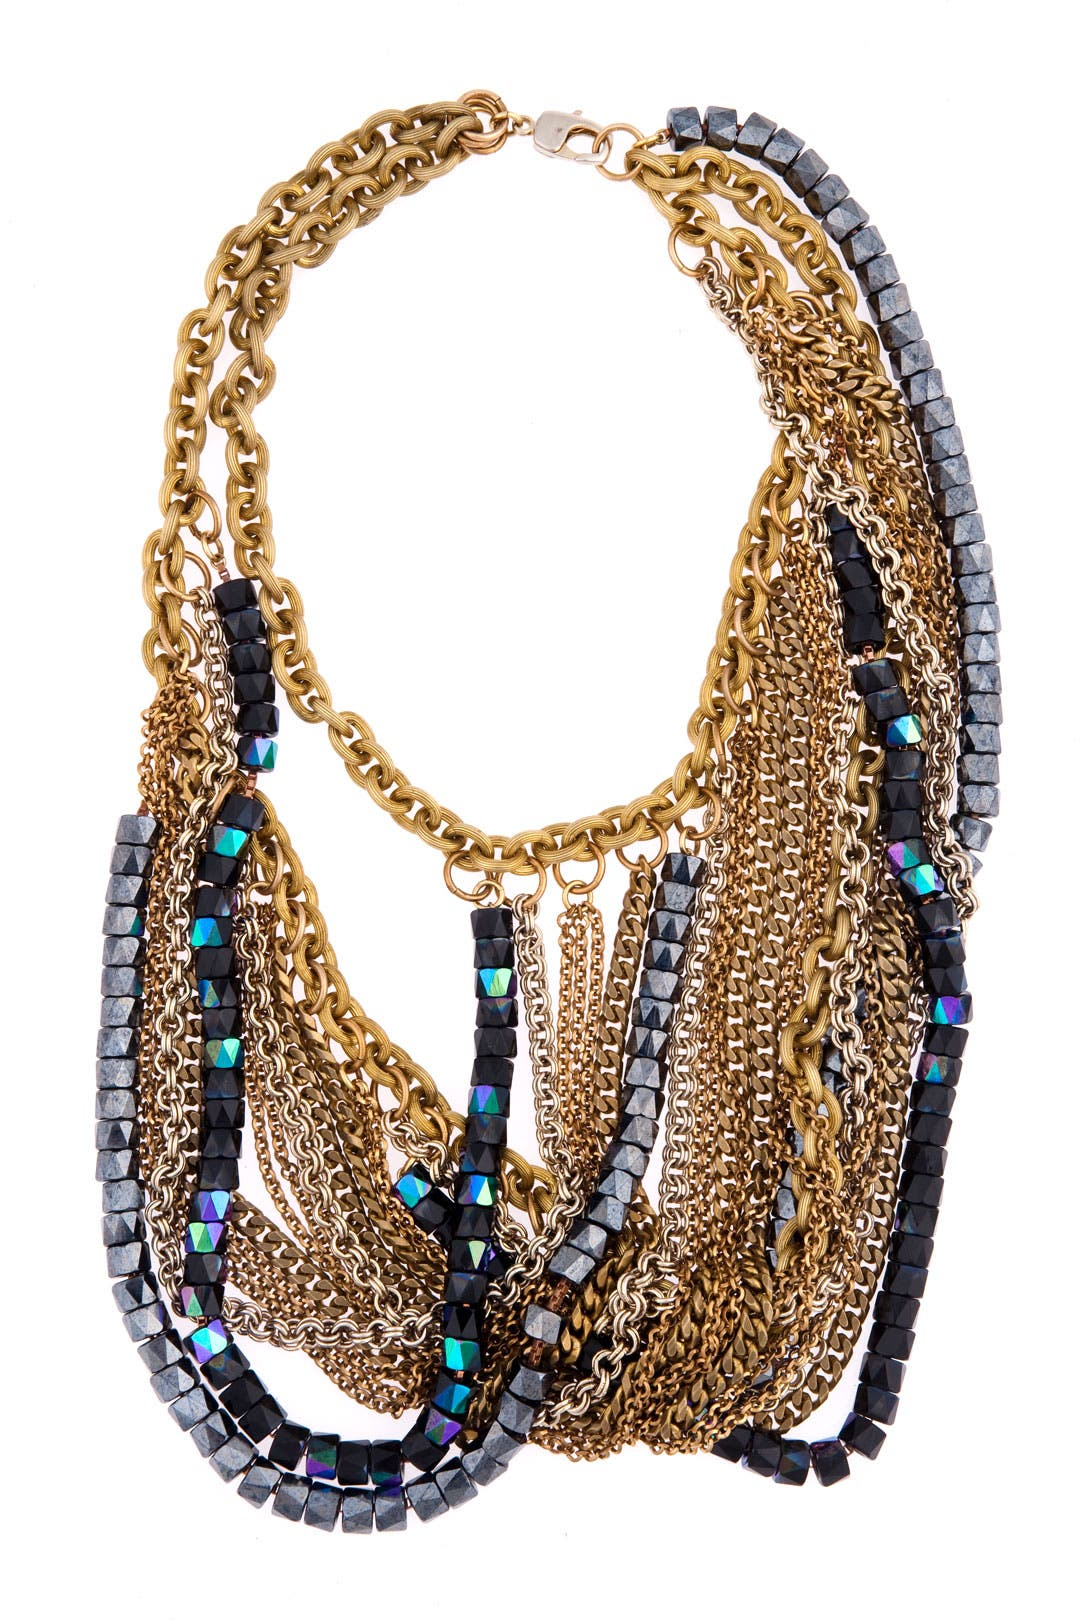 Palafico Necklace by Nicole Romano